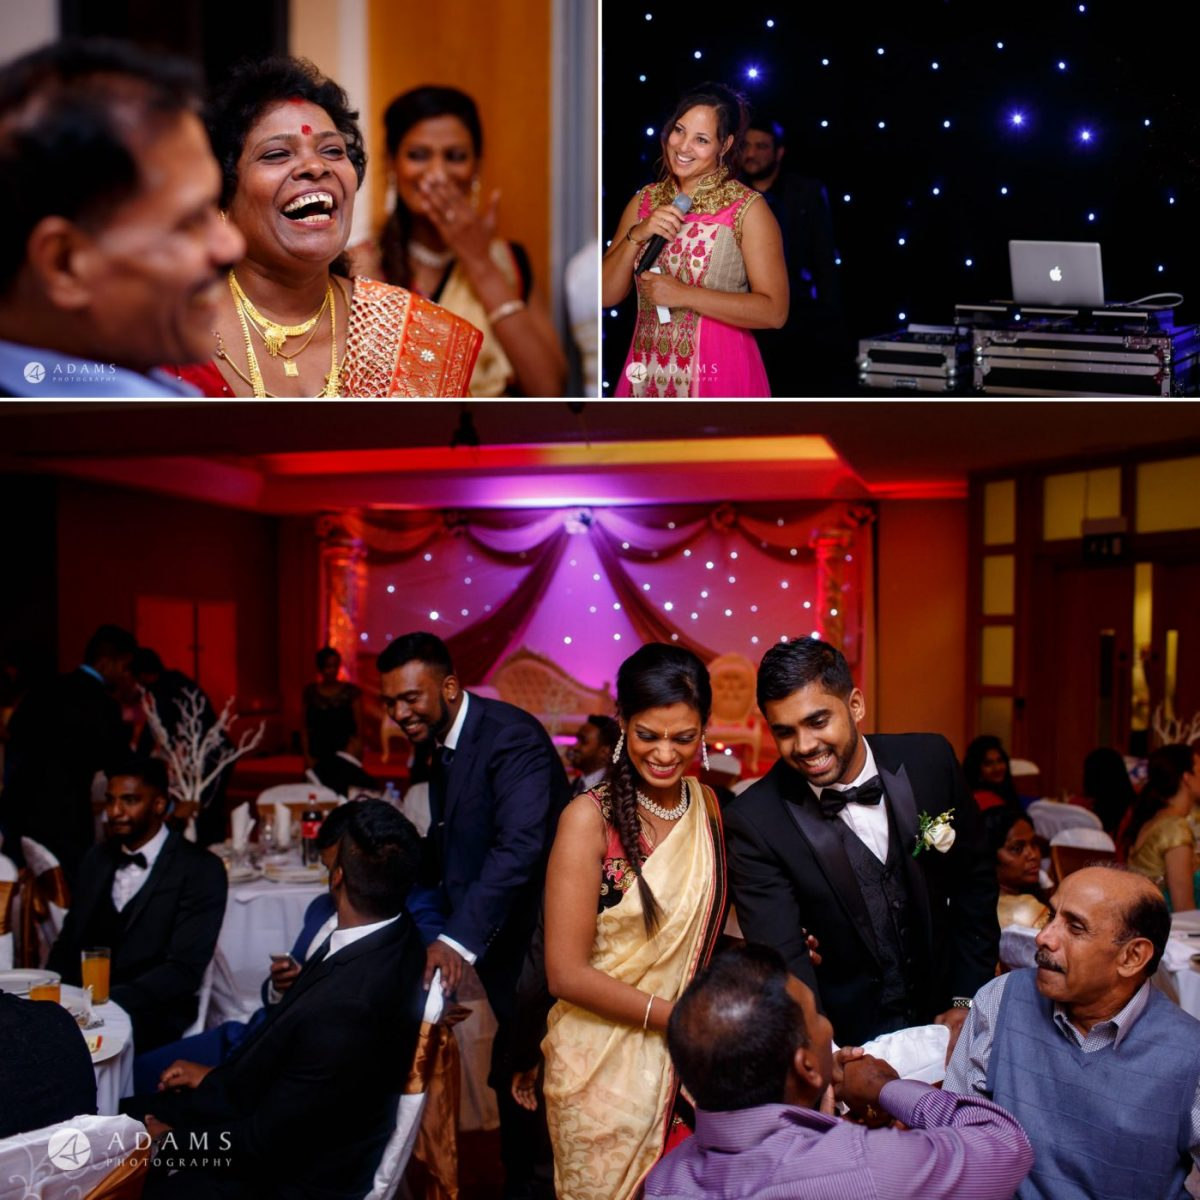 Baylis House Wedding Photographer | Sara + Anojan 26